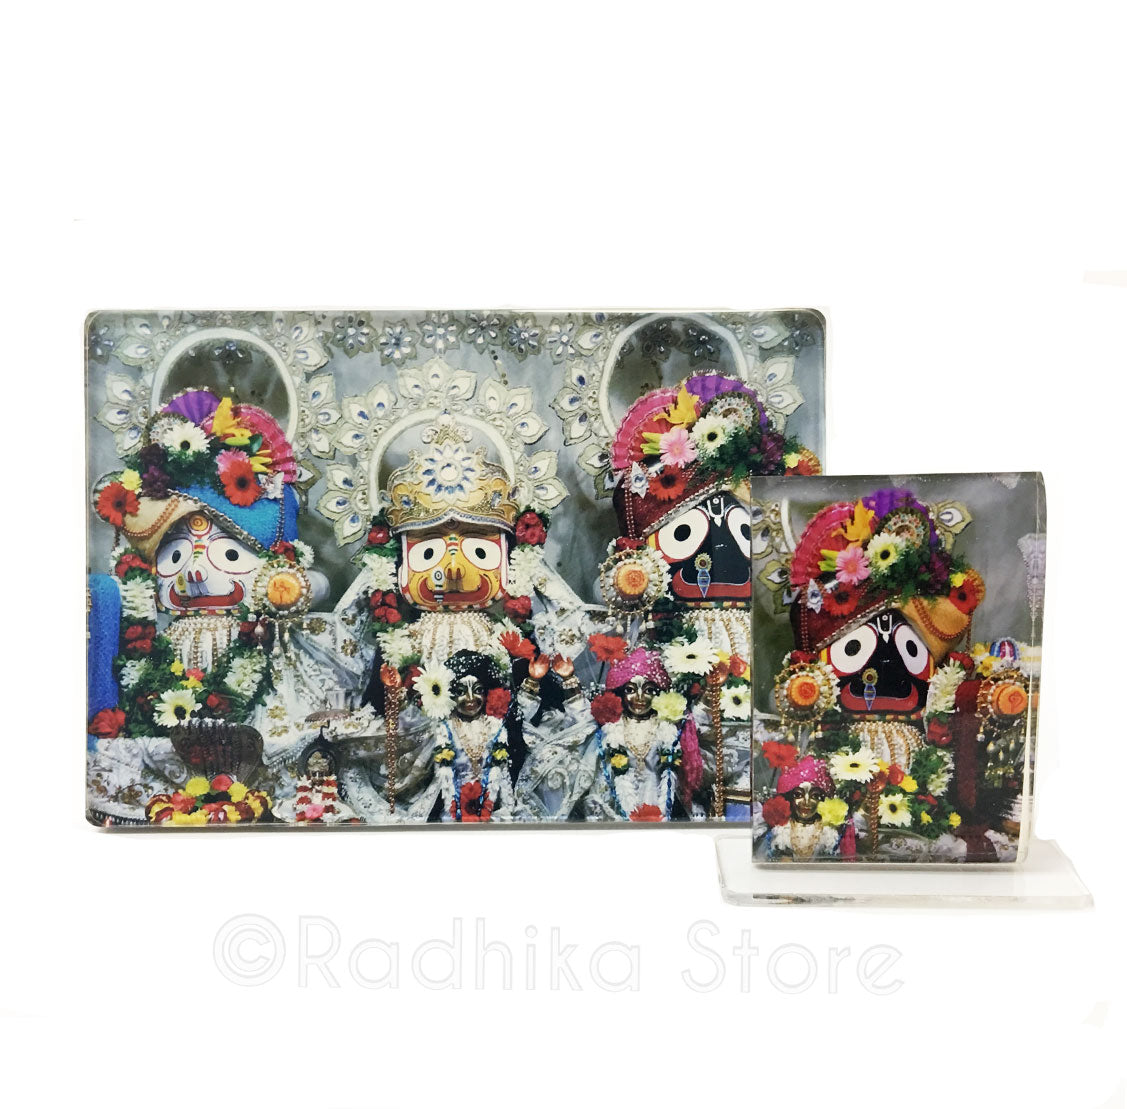 Lord Jagannath White and Silver Acrylic Picture- Choose Size